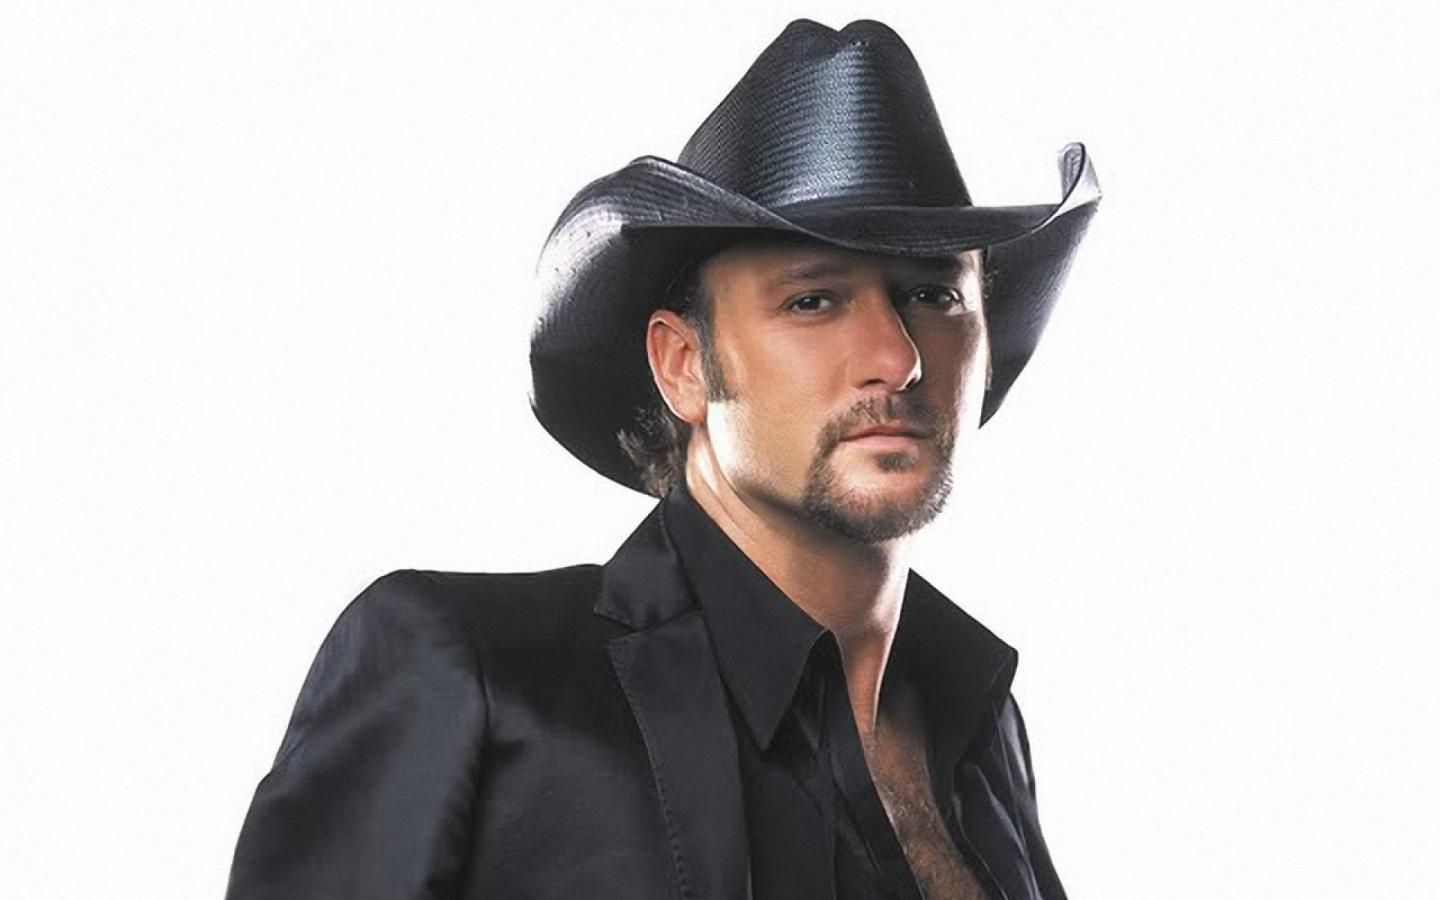 Charming Tim McGraw 1440x900 Wallpapers 1440x900 Wallpapers 1440x900